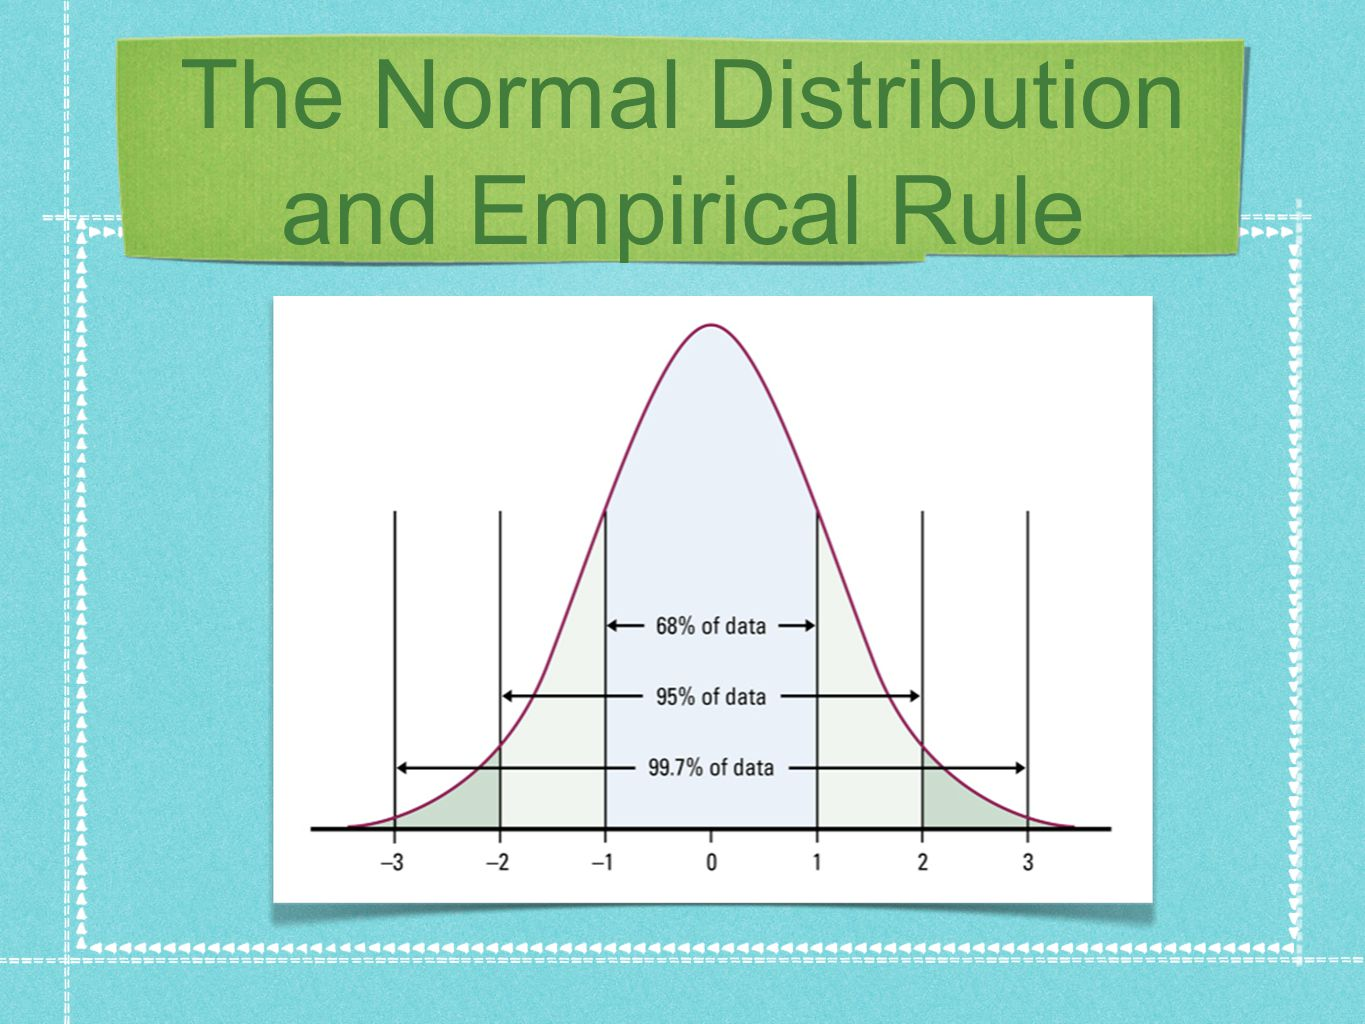 Example: YOUNG WOMEN's HEIGHT The distribution of heights of young women aged 18 to 24 is approximately Normal with mean μ = 64.5 inches and standard deviation σ = 2.5 inches.